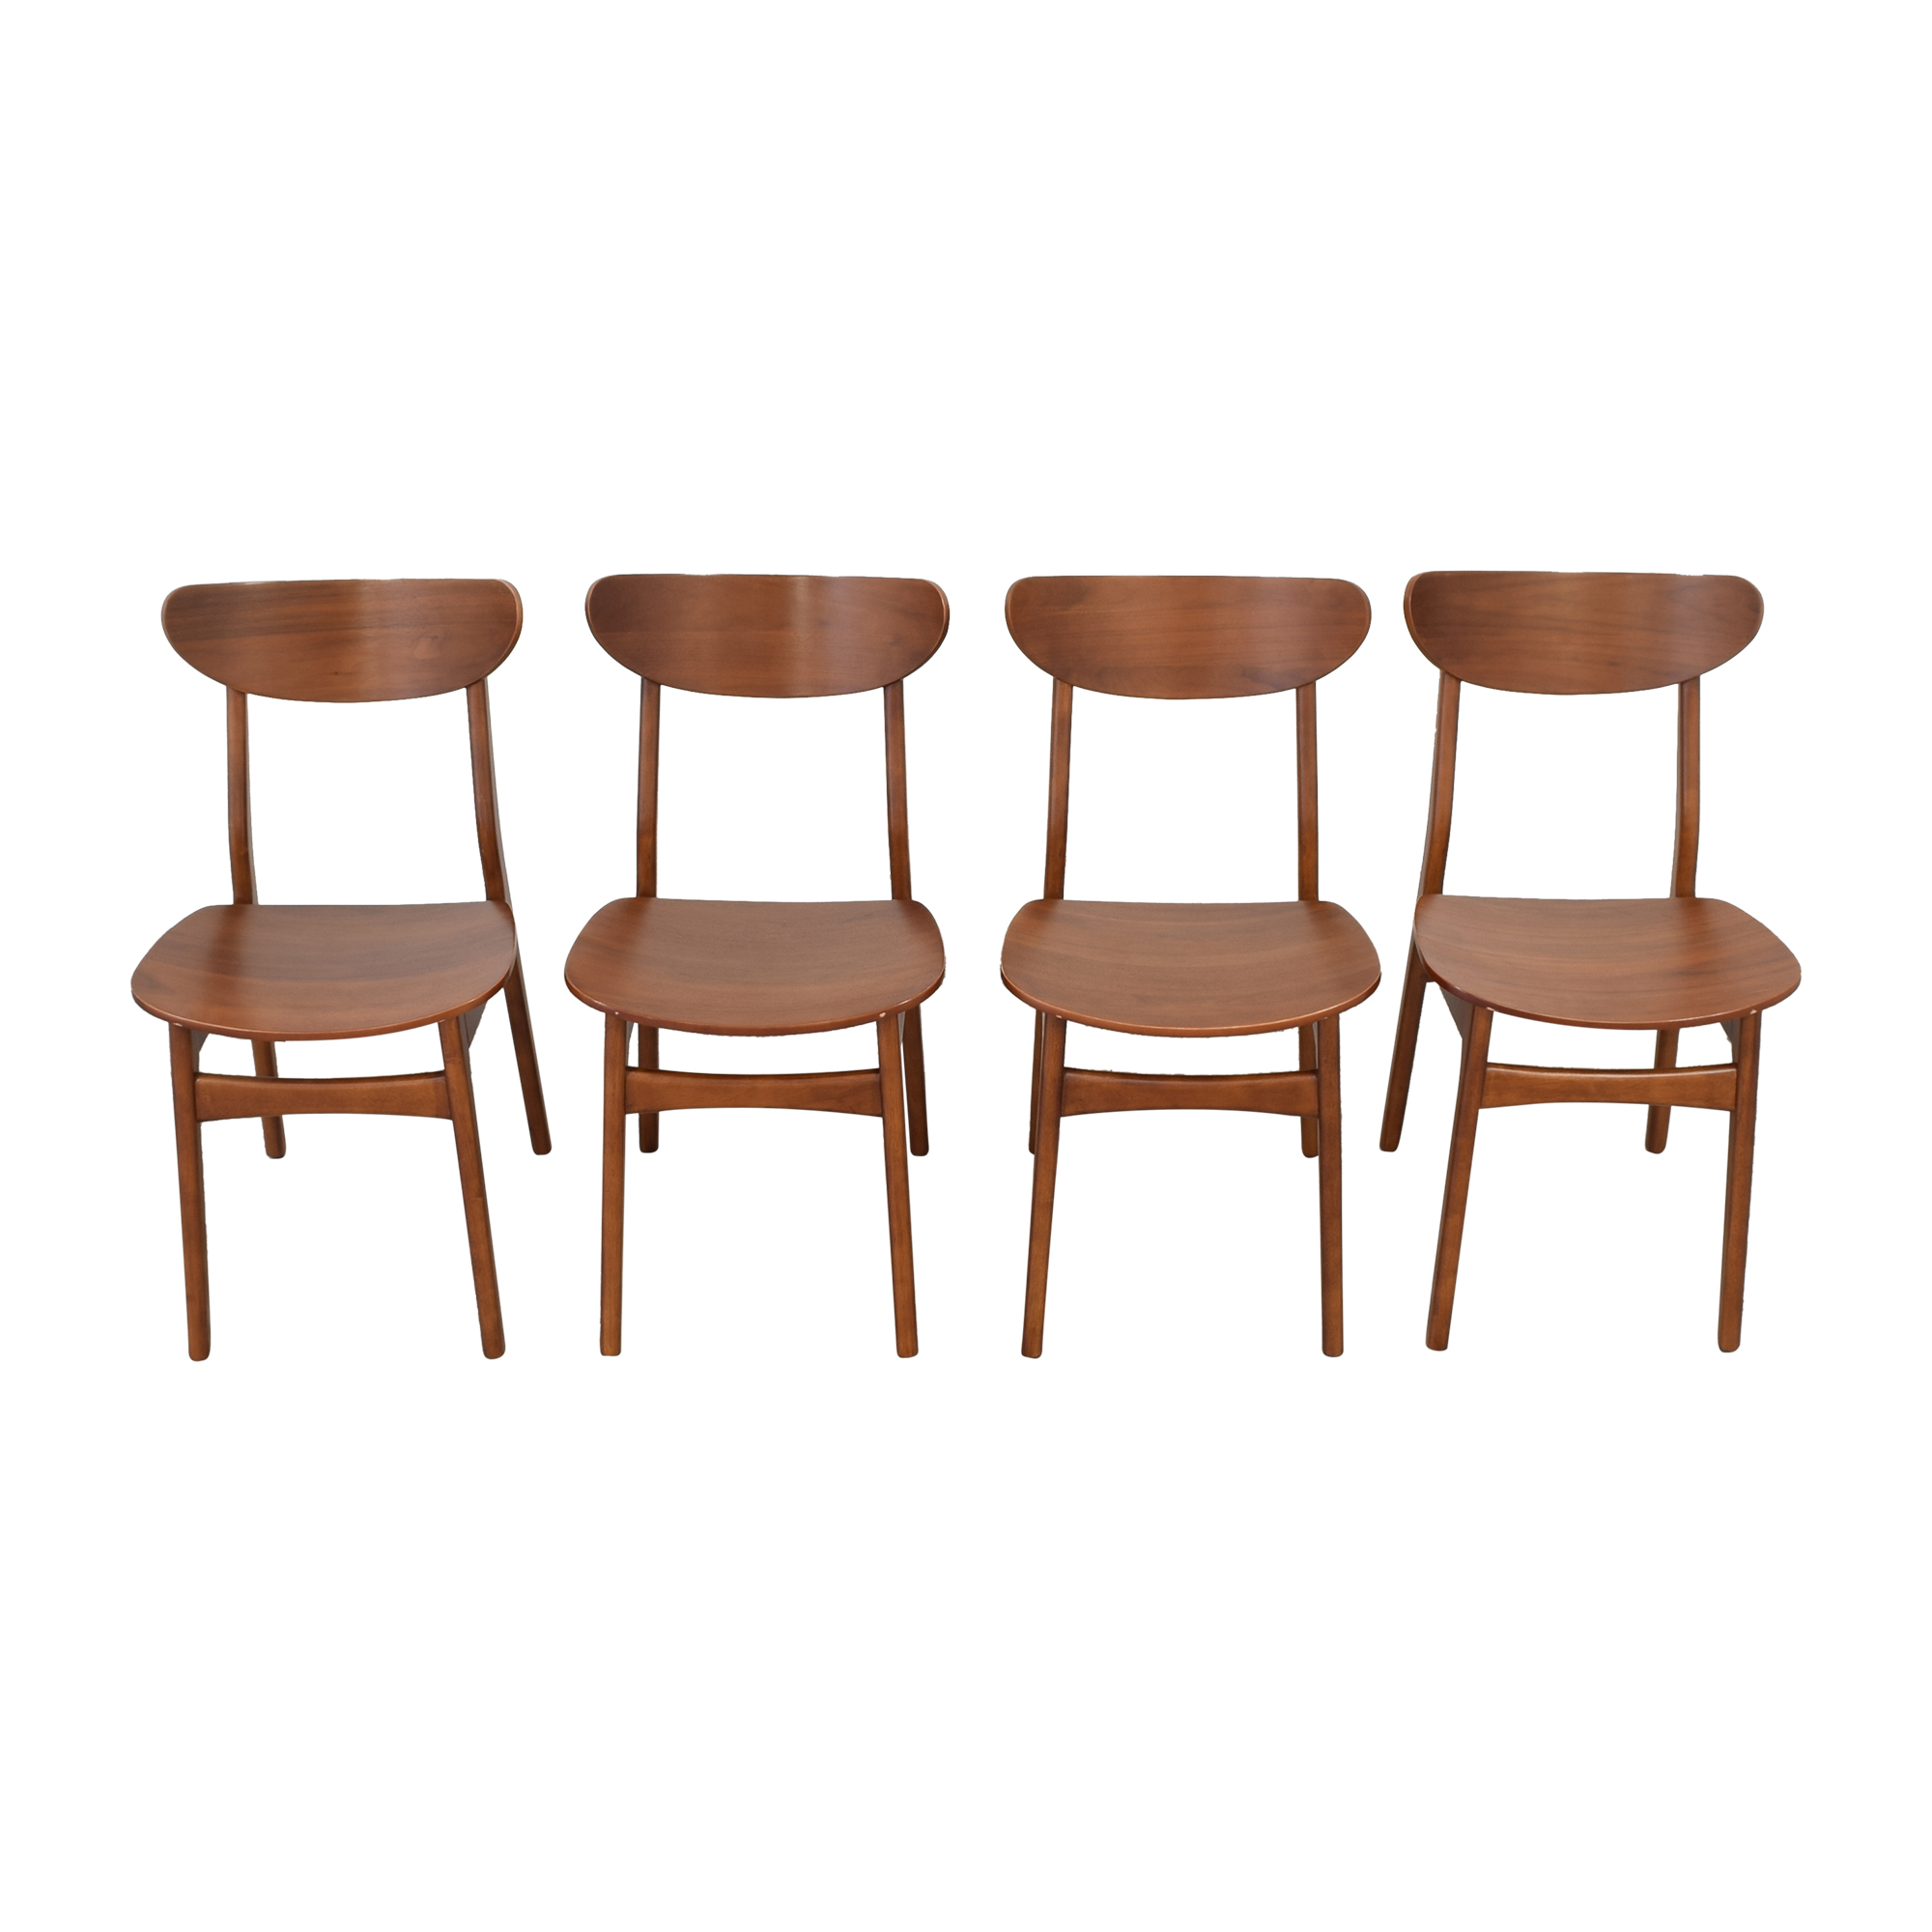 West Elm West Elm Classic Cafe Dining Chairs for sale